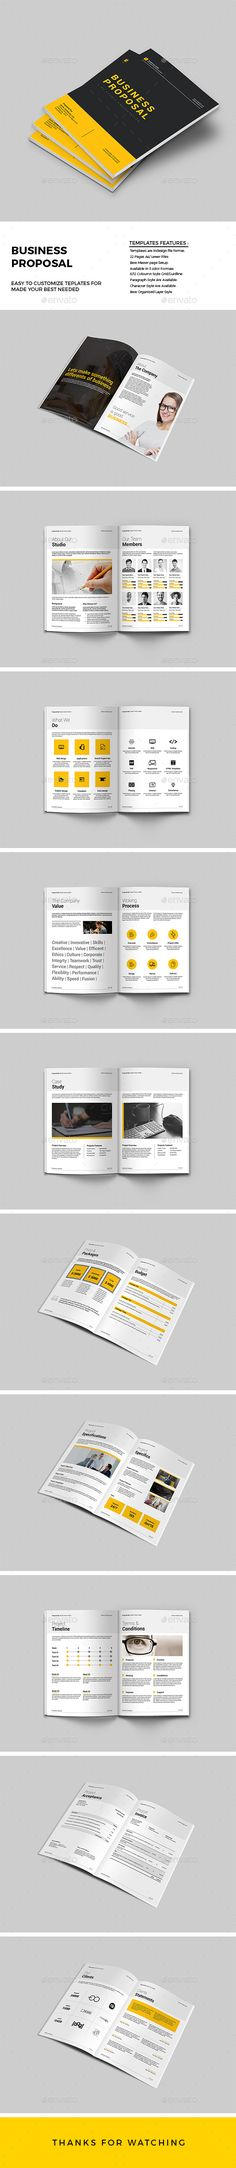 Web Design Proposal Proposals, Stationery and Projects - what is in a design proposal